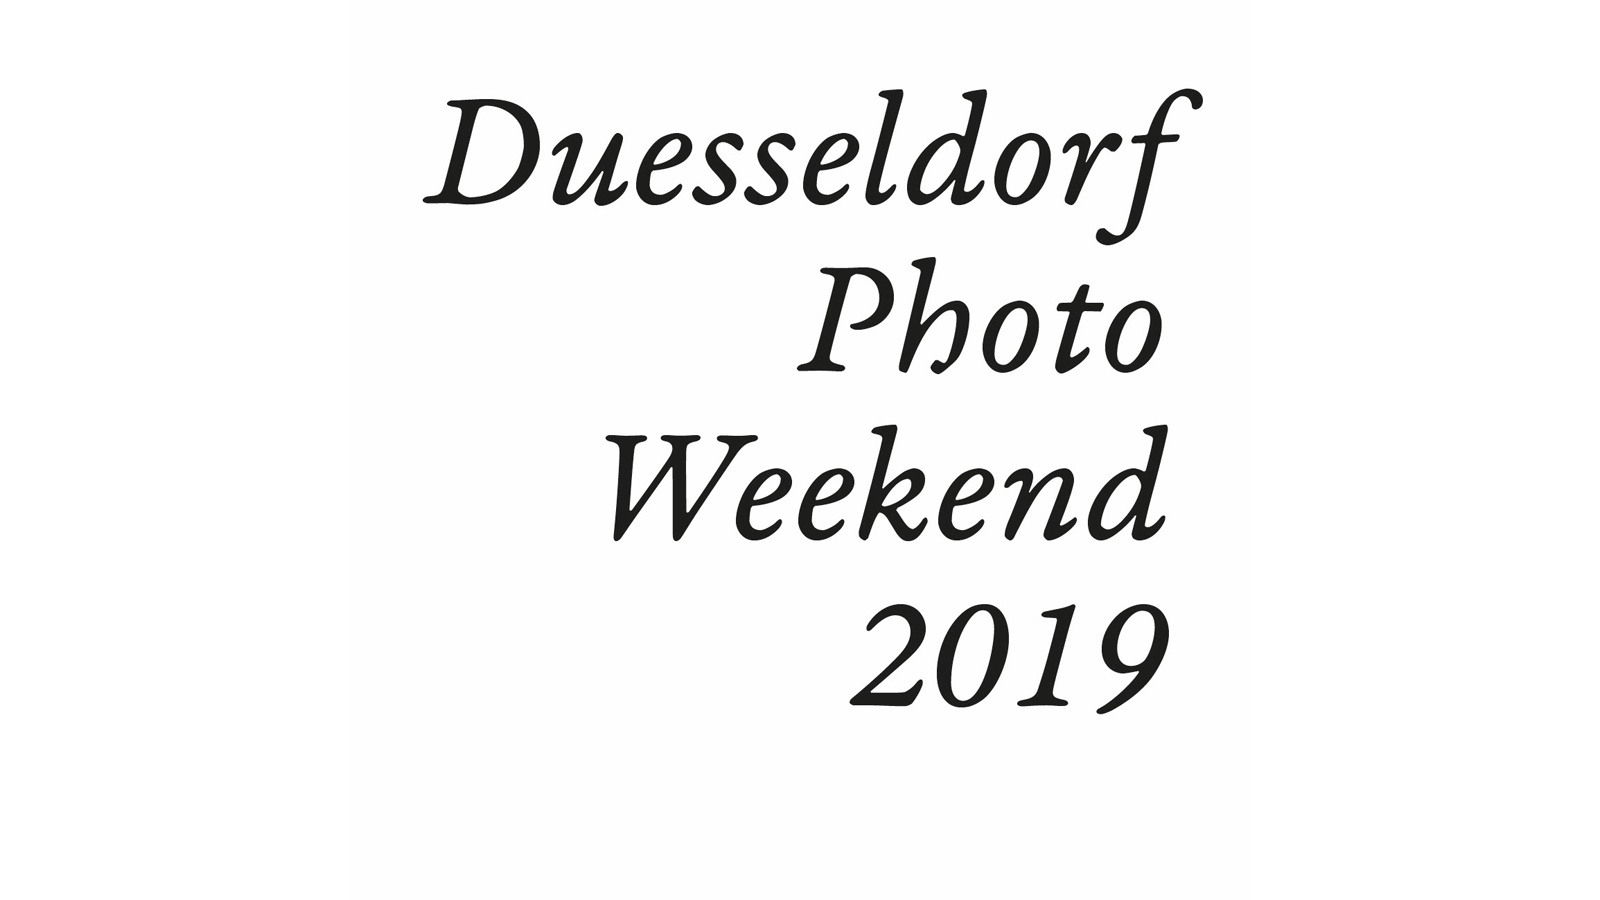 »Duesseldorf Photo Weekend 2019« 8. — 10. März